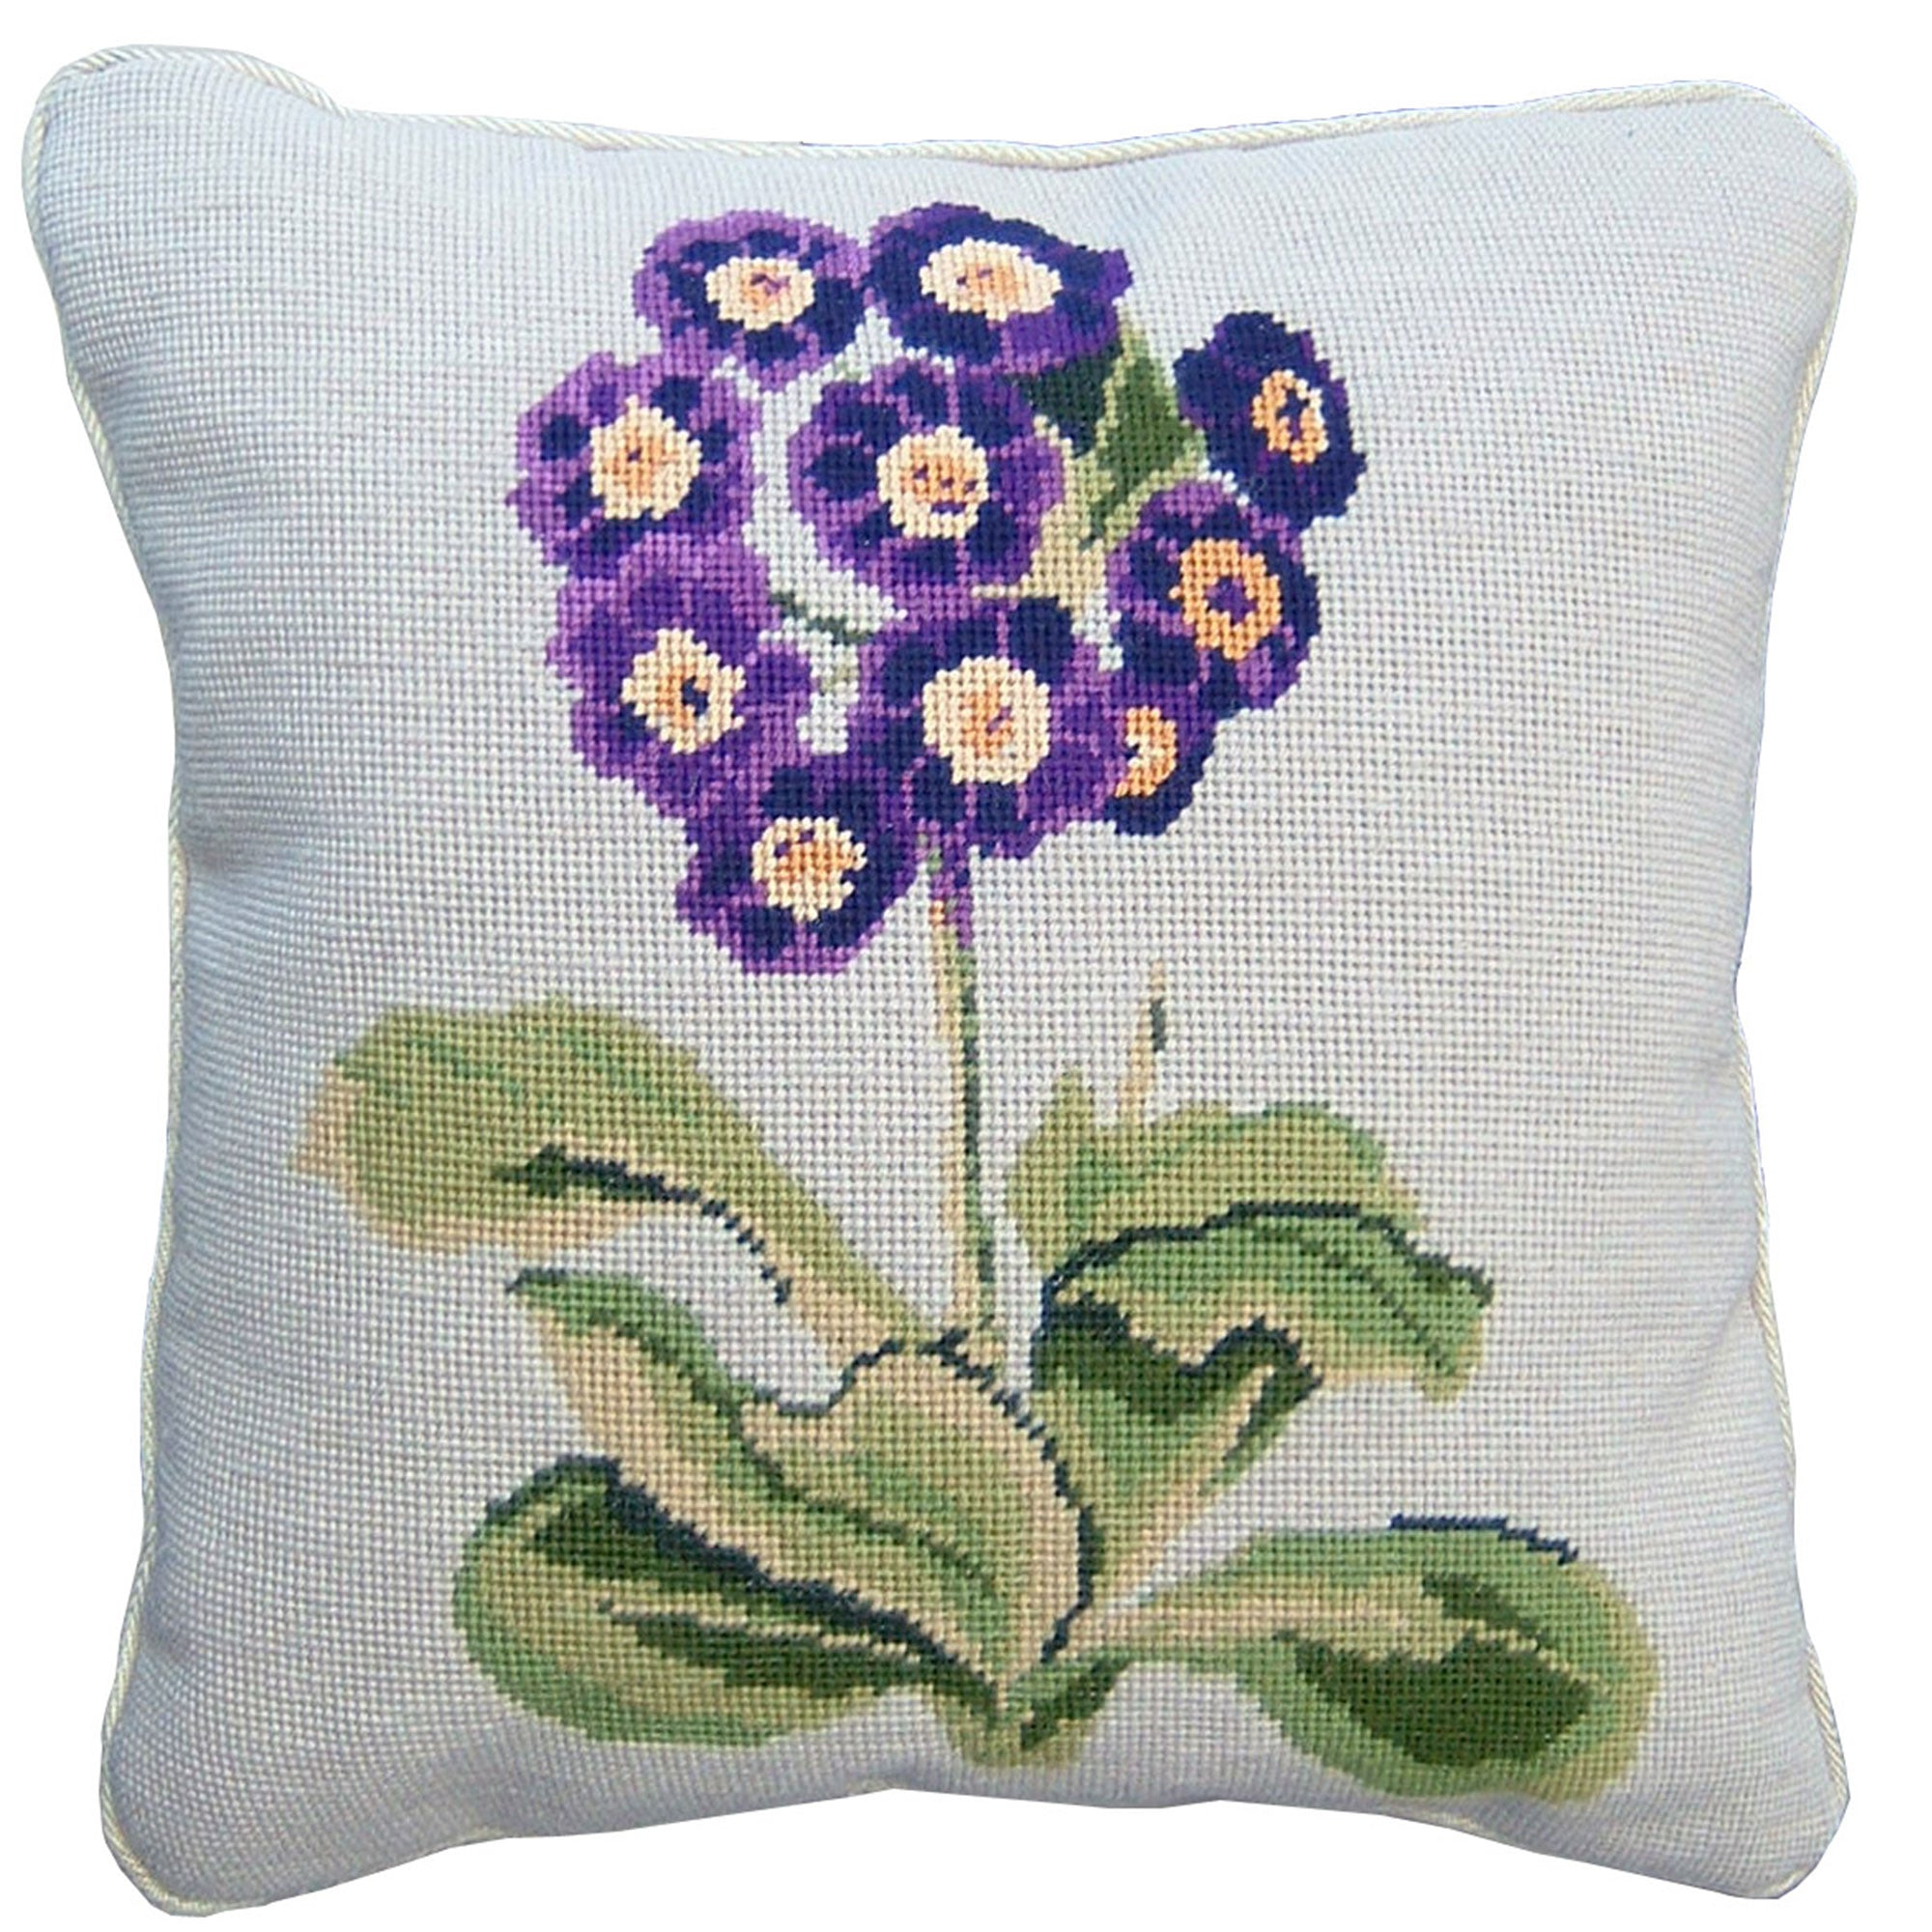 Handmade needlepoint cushion with purple auricula flower on cream background